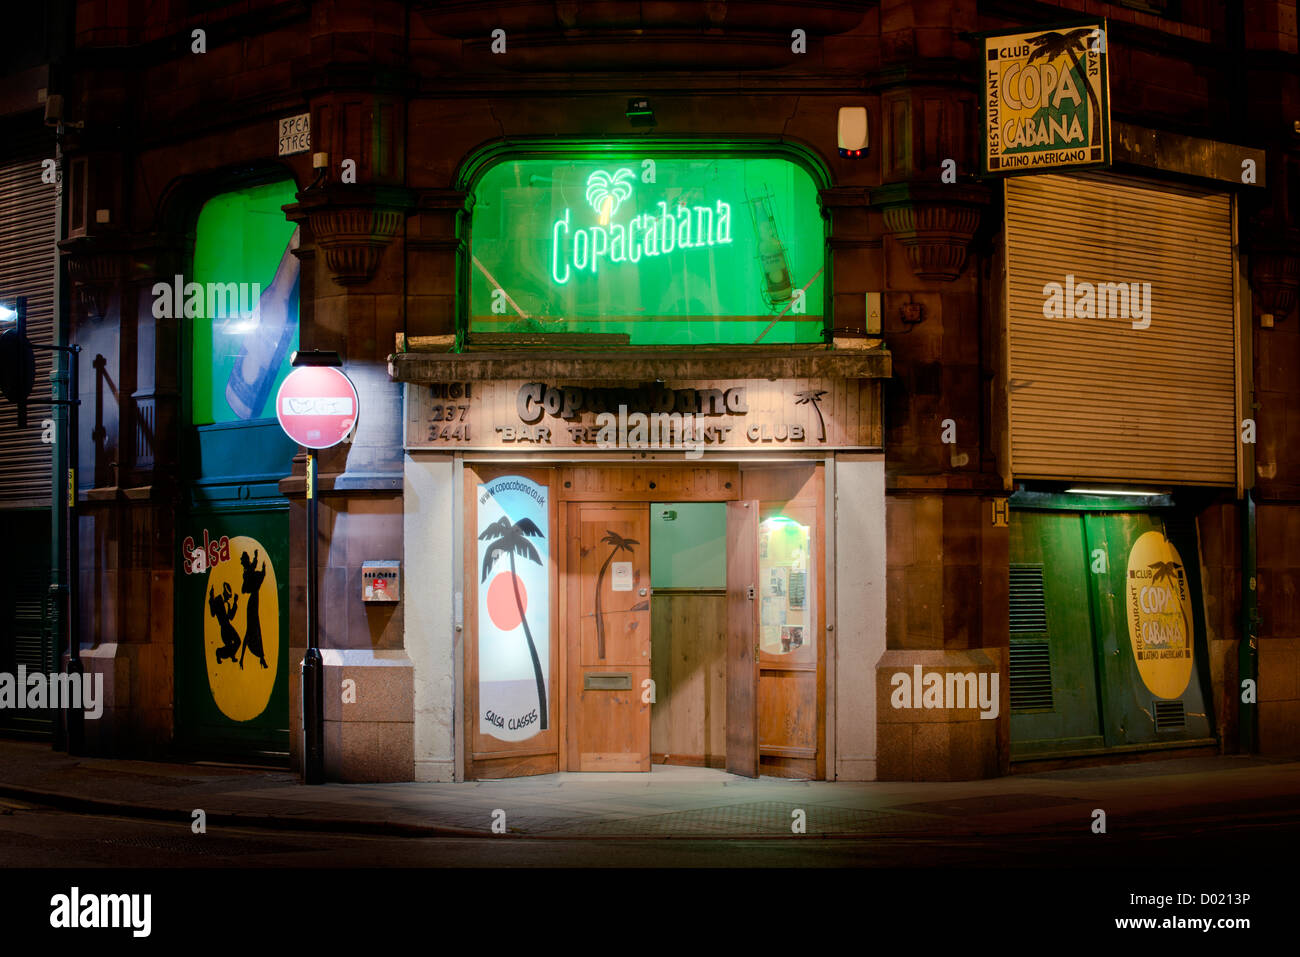 External shot of entrance of Copacabana latin club and bar on Dale Street in Northern Quarter, Manchester. - Stock Image